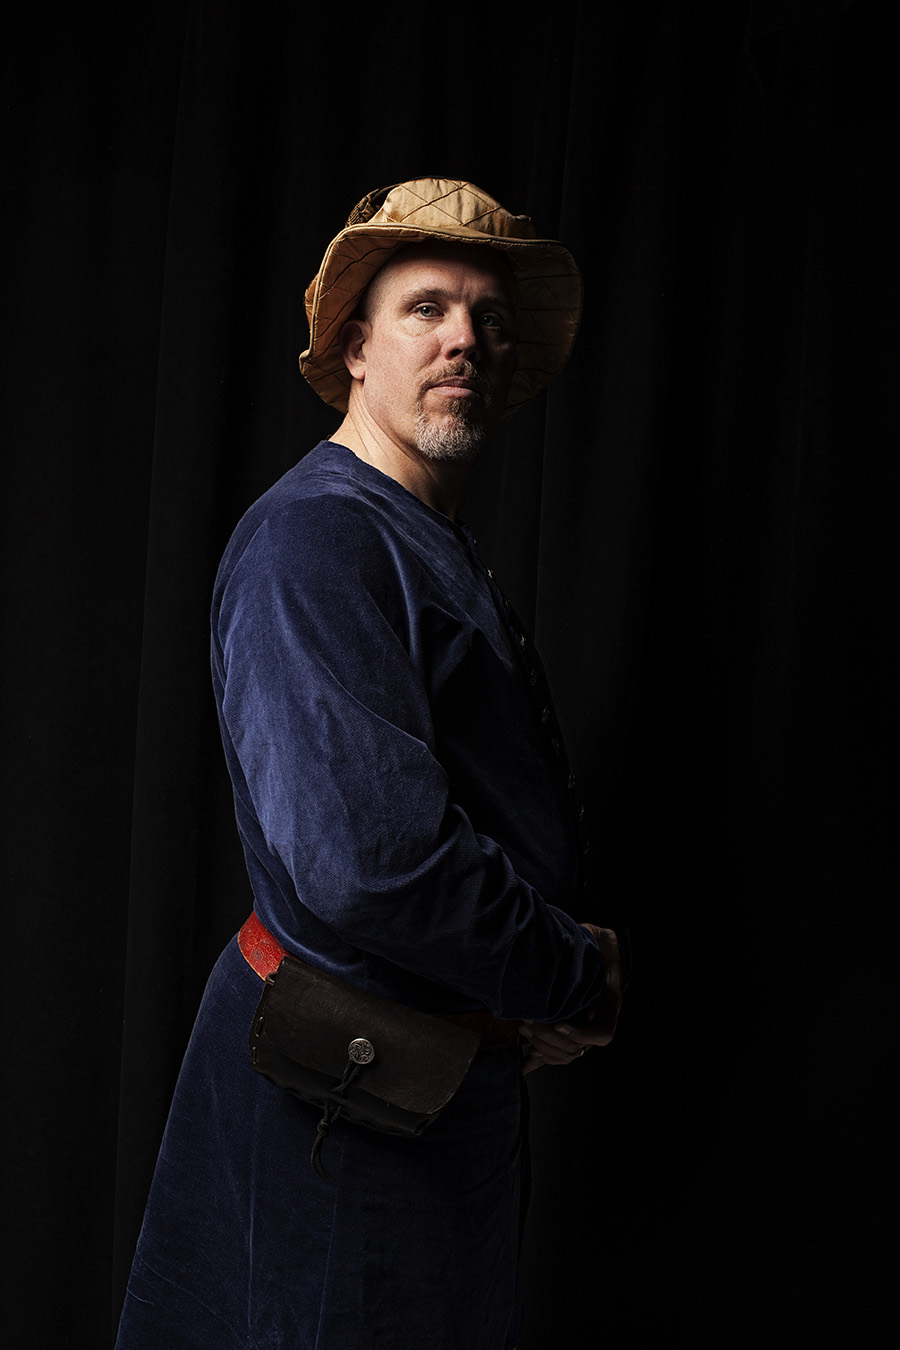 Medieval Portrait | Gulf Coast Society for Creative Anachronism